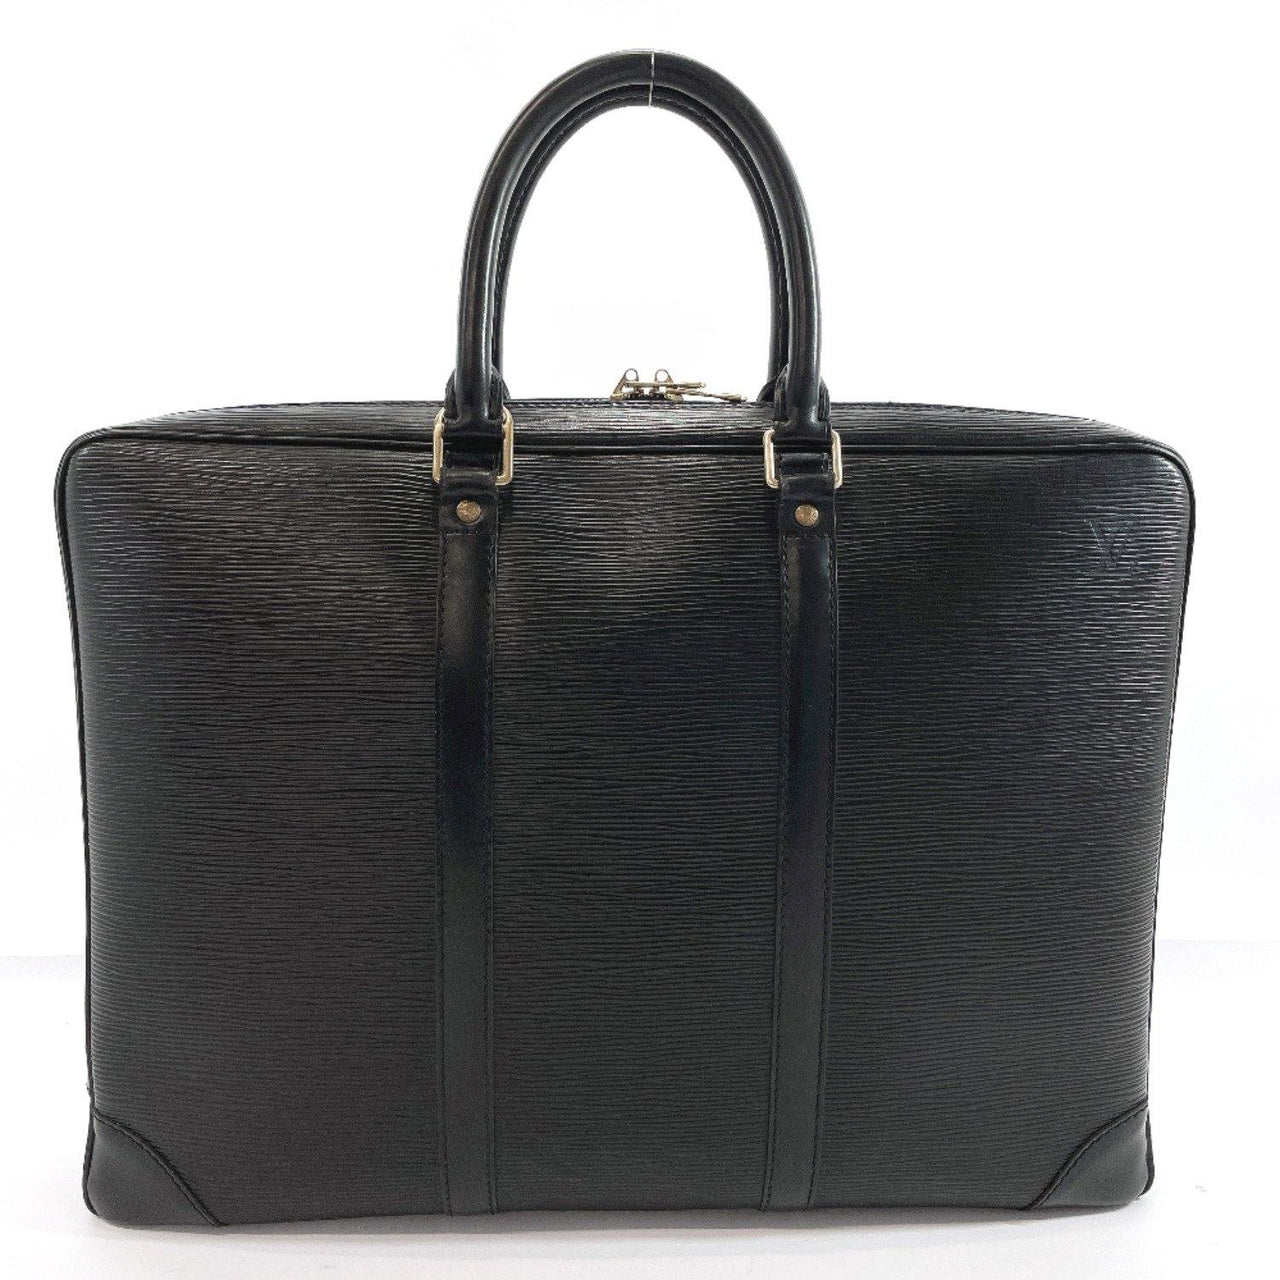 LOUIS VUITTON Business bag M59162 Porte de Cuman Voyage Epi Leather black mens Used - JP-BRANDS.com